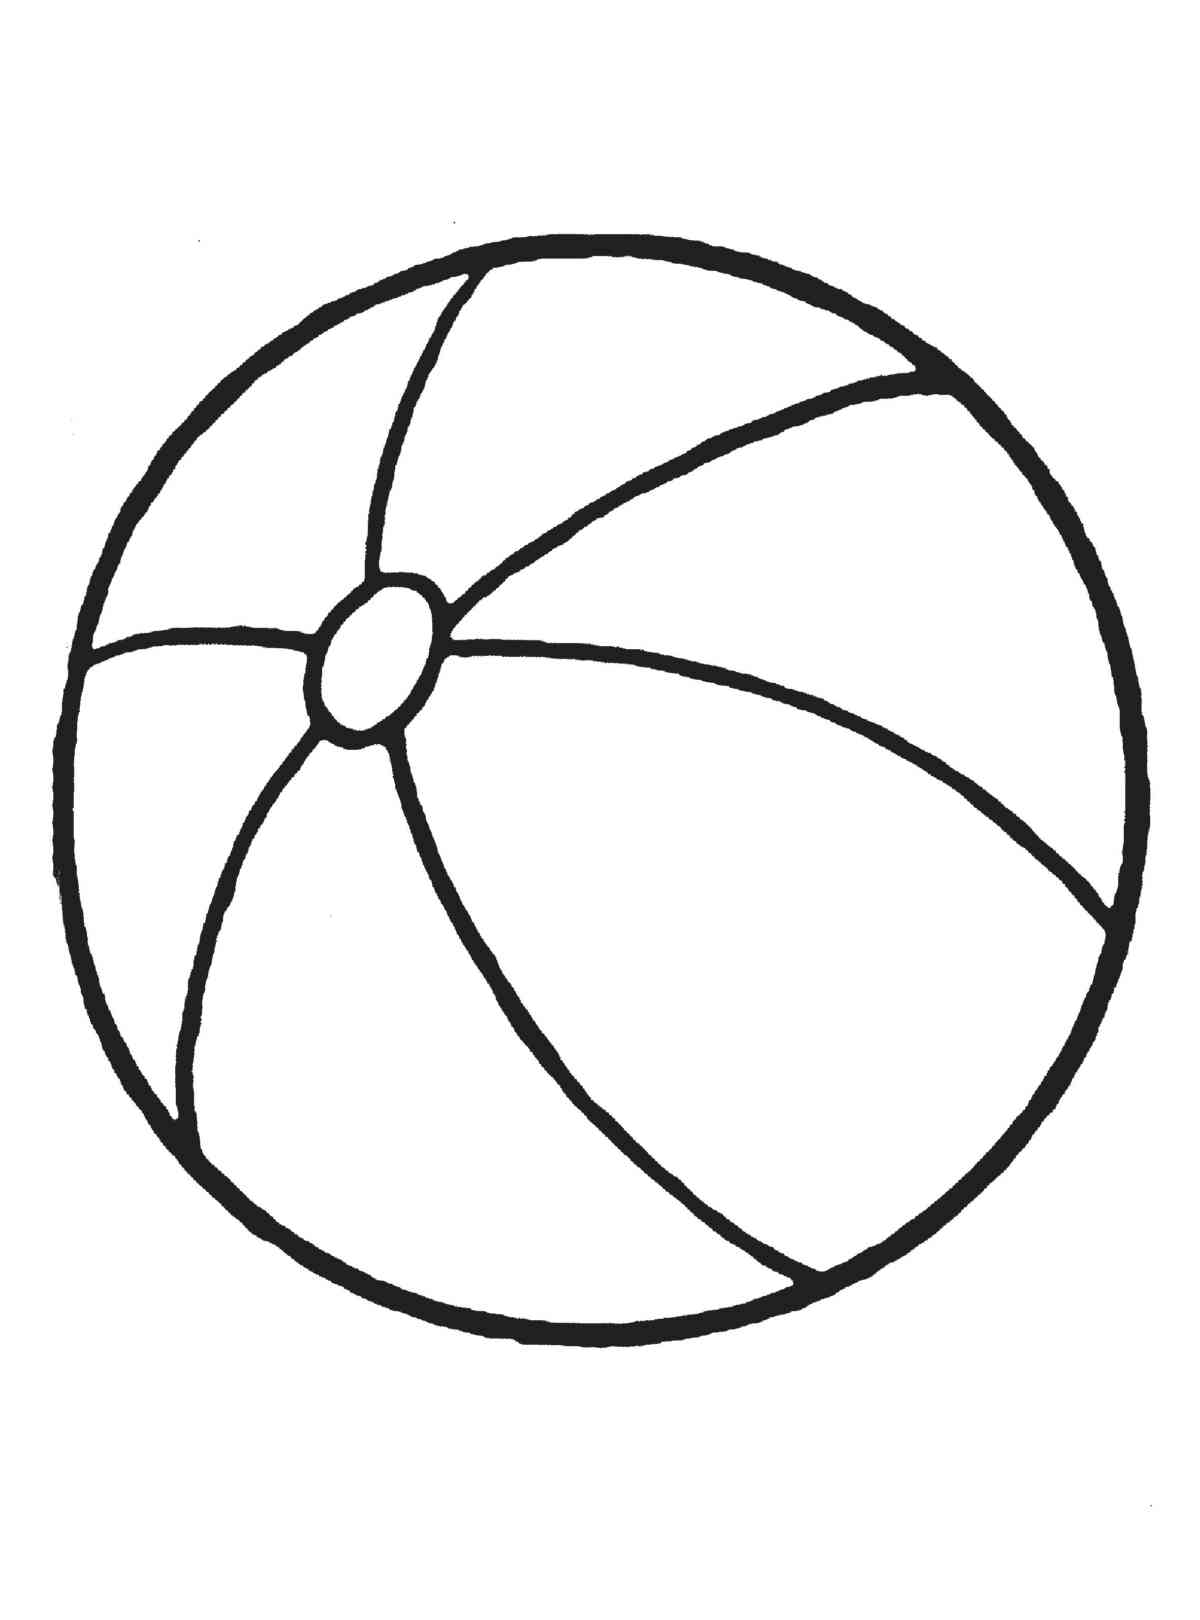 Colouring picture of a ball